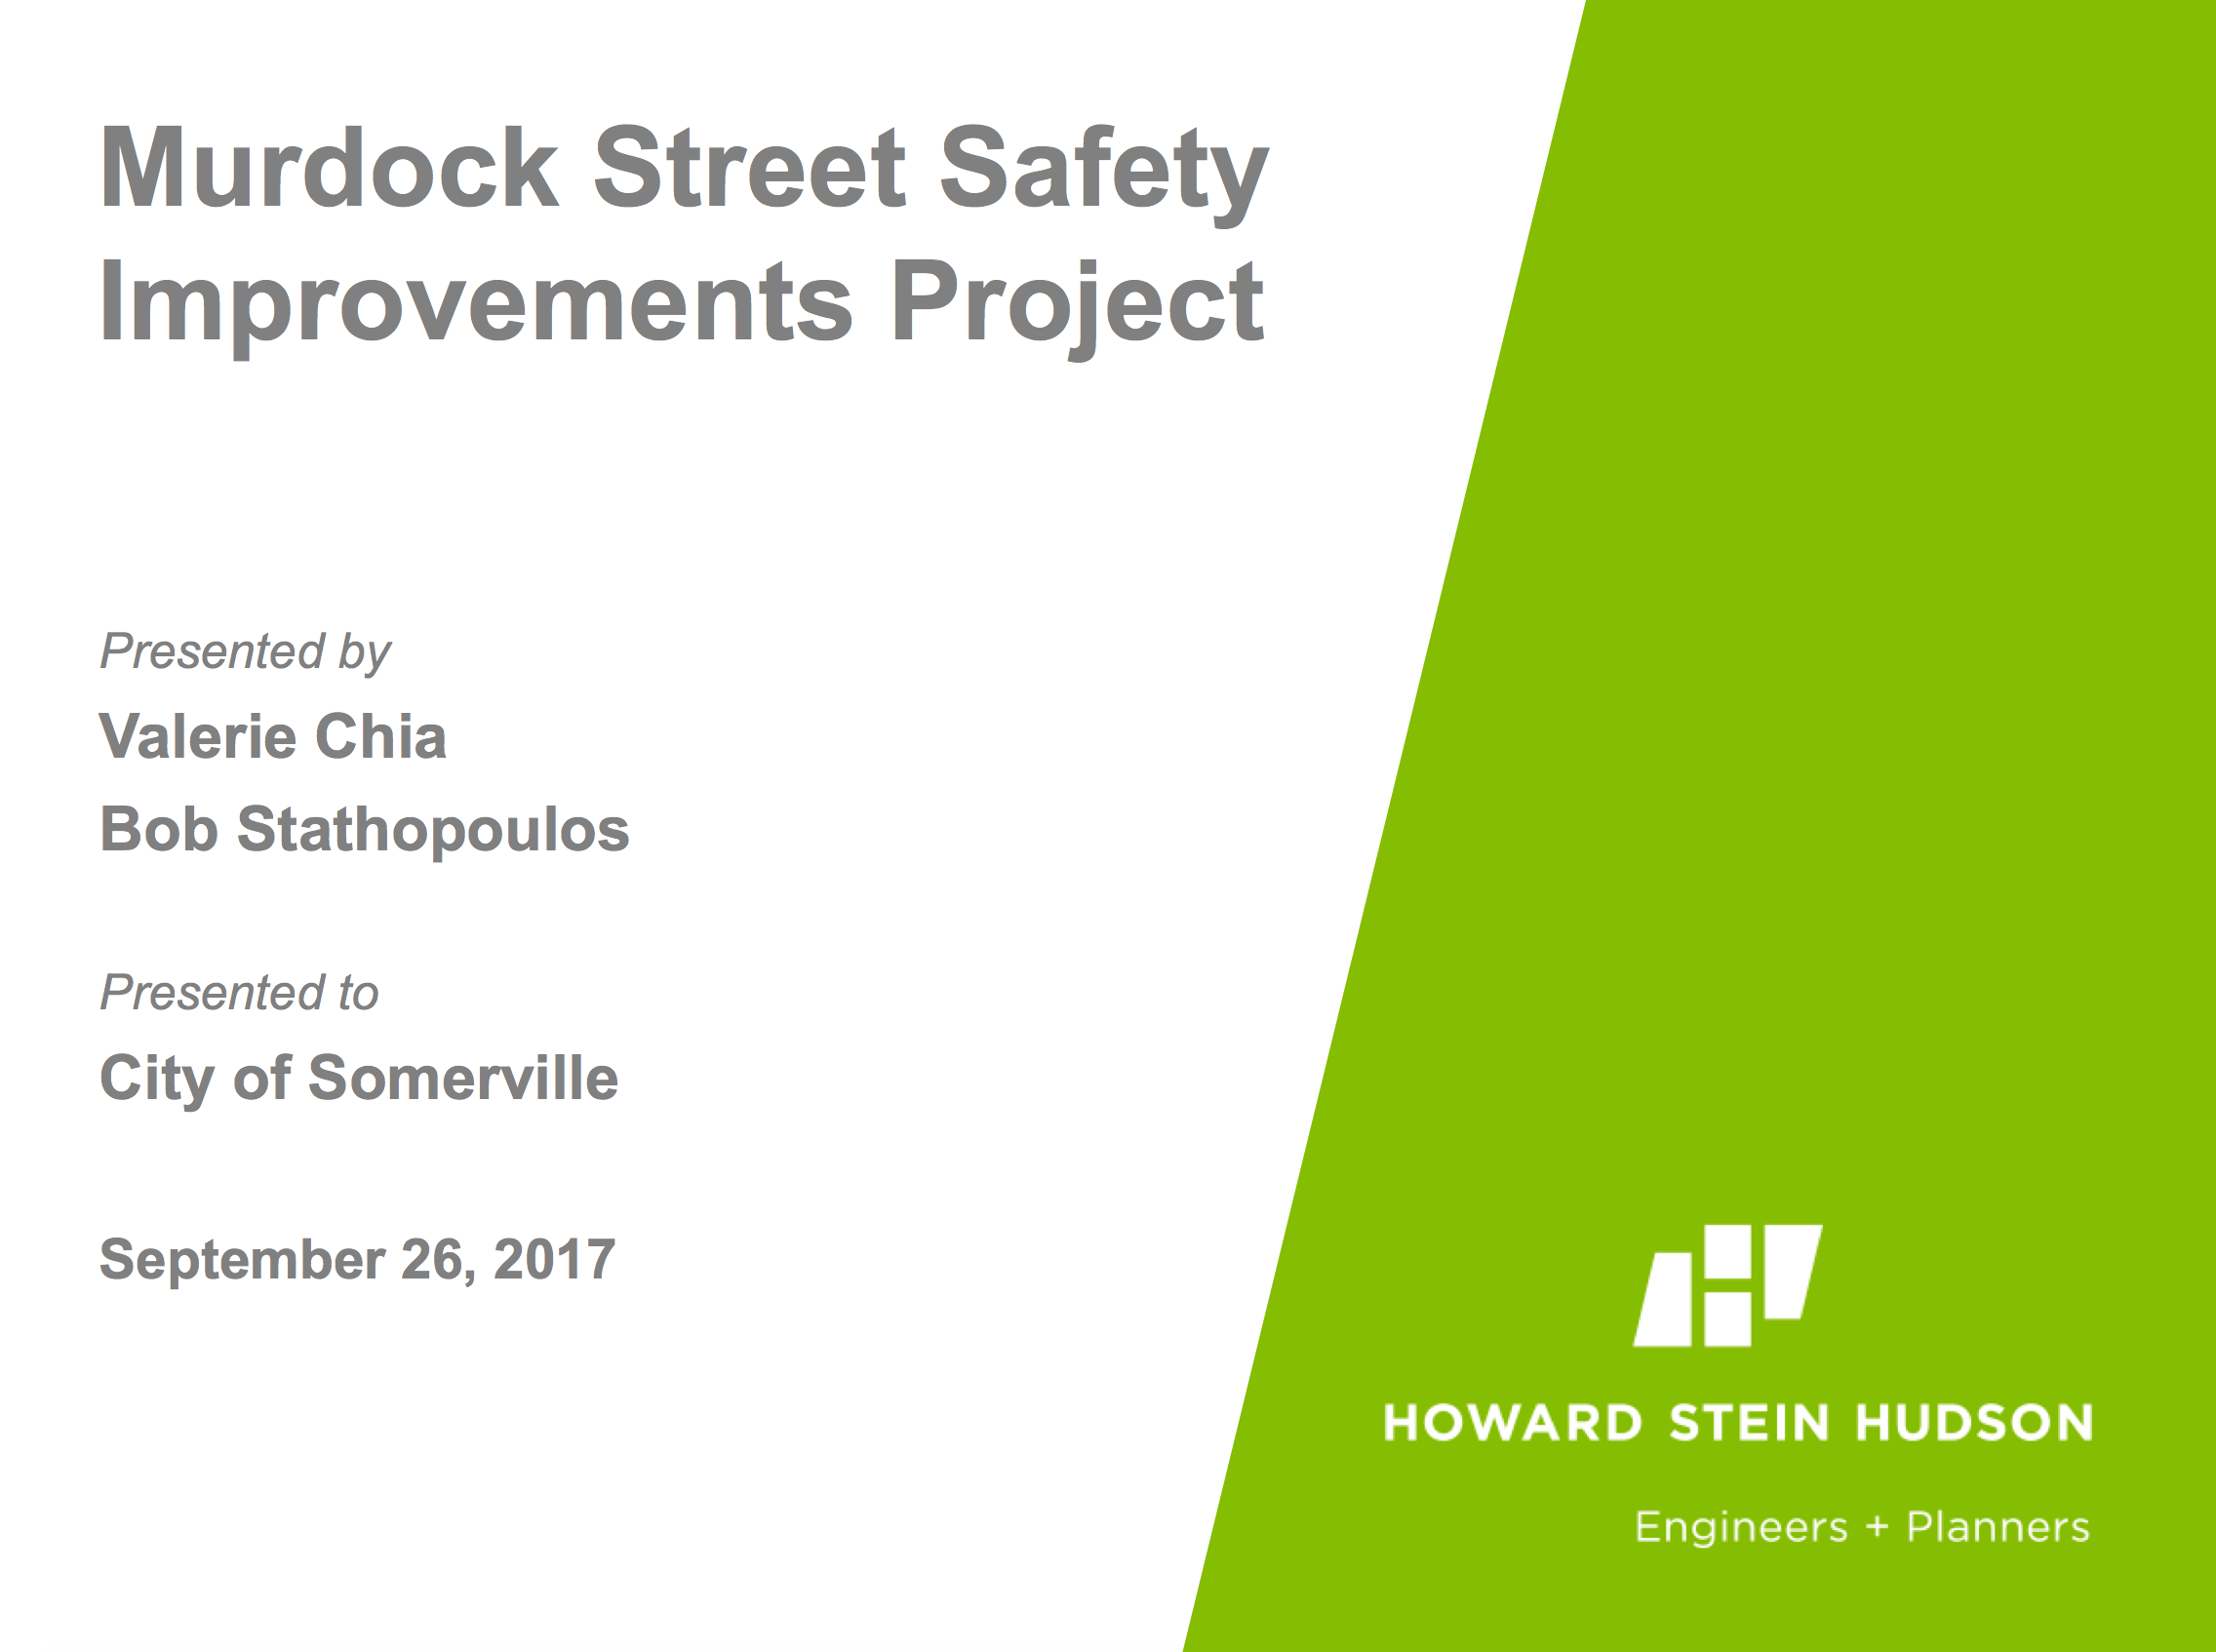 PDF preview links to a presentation on the Murdock Streetscape Improvements Project